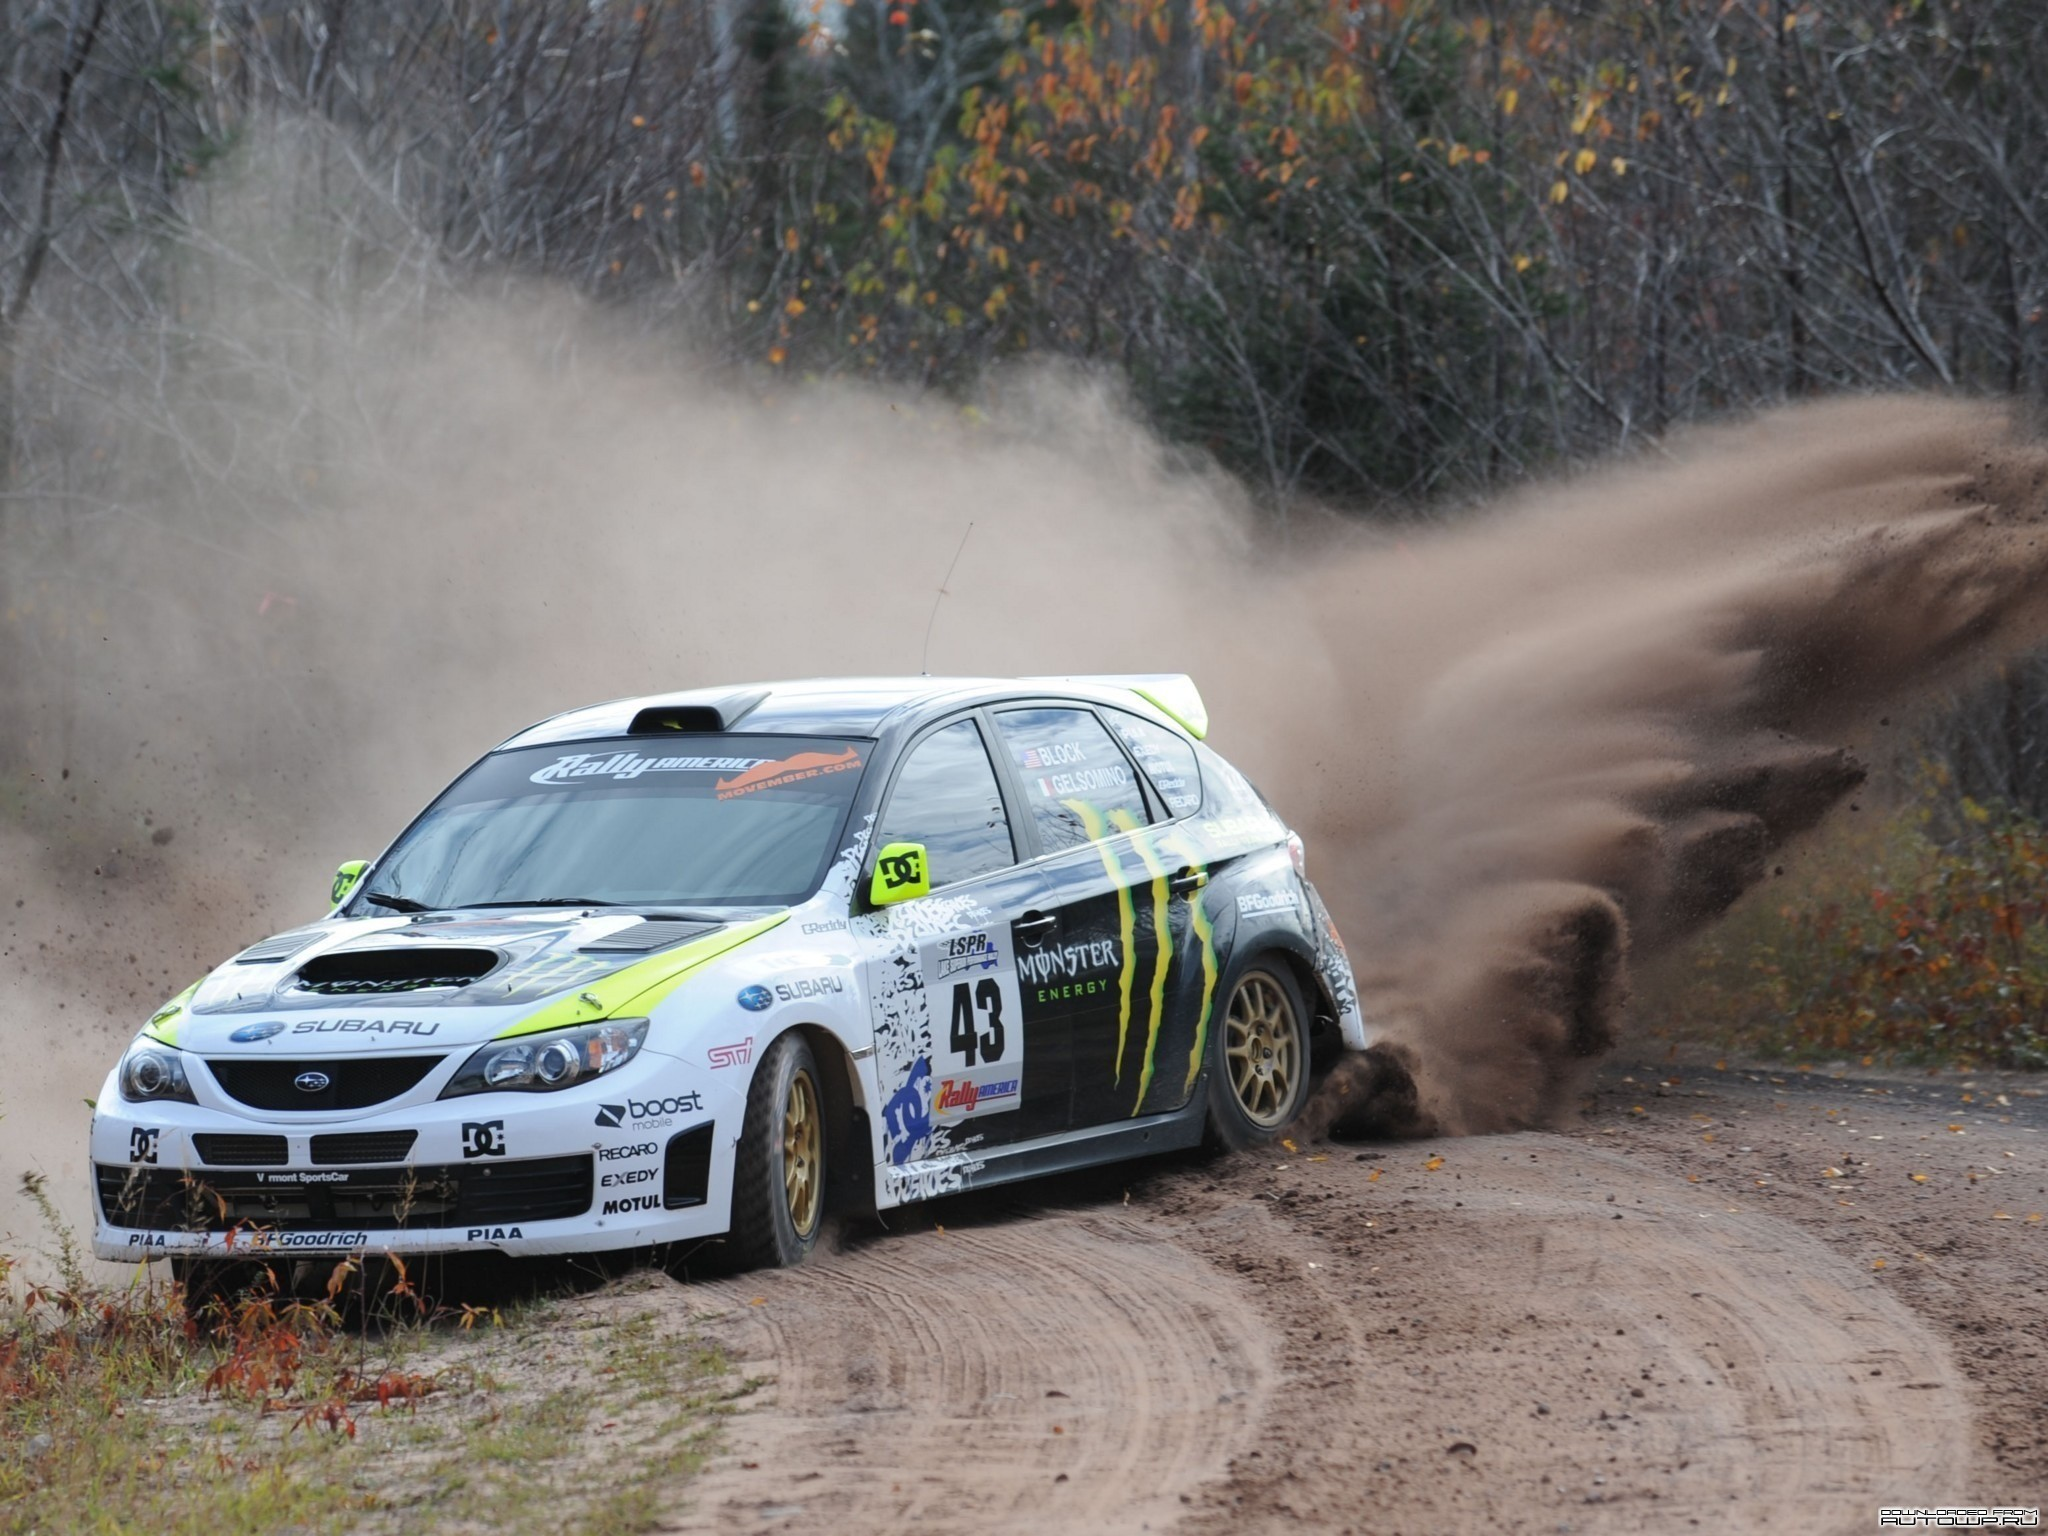 sand cars dust rally HD Wallpaper